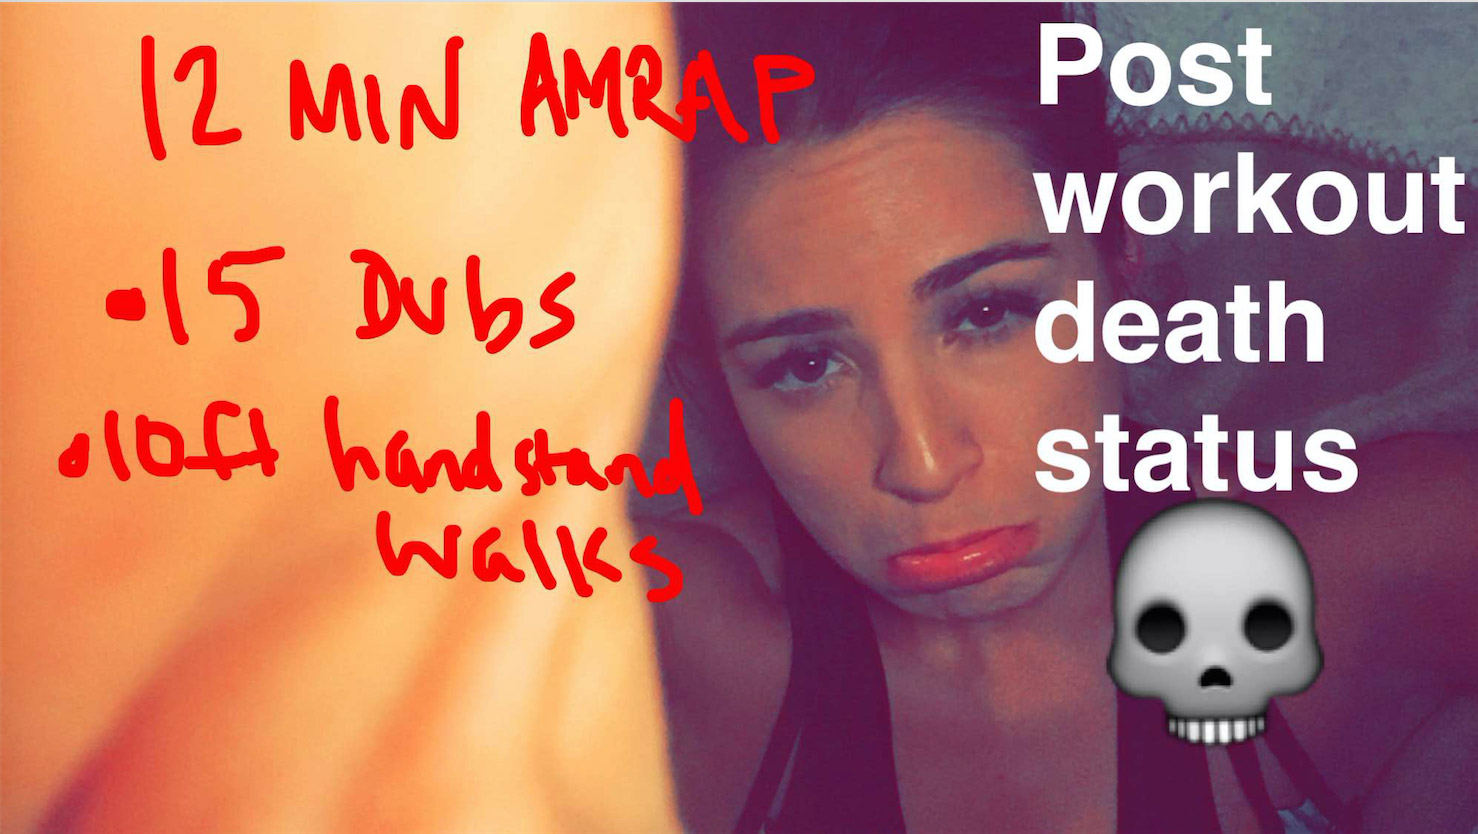 AMRAP workout from snapchat (@yogaby_candace)